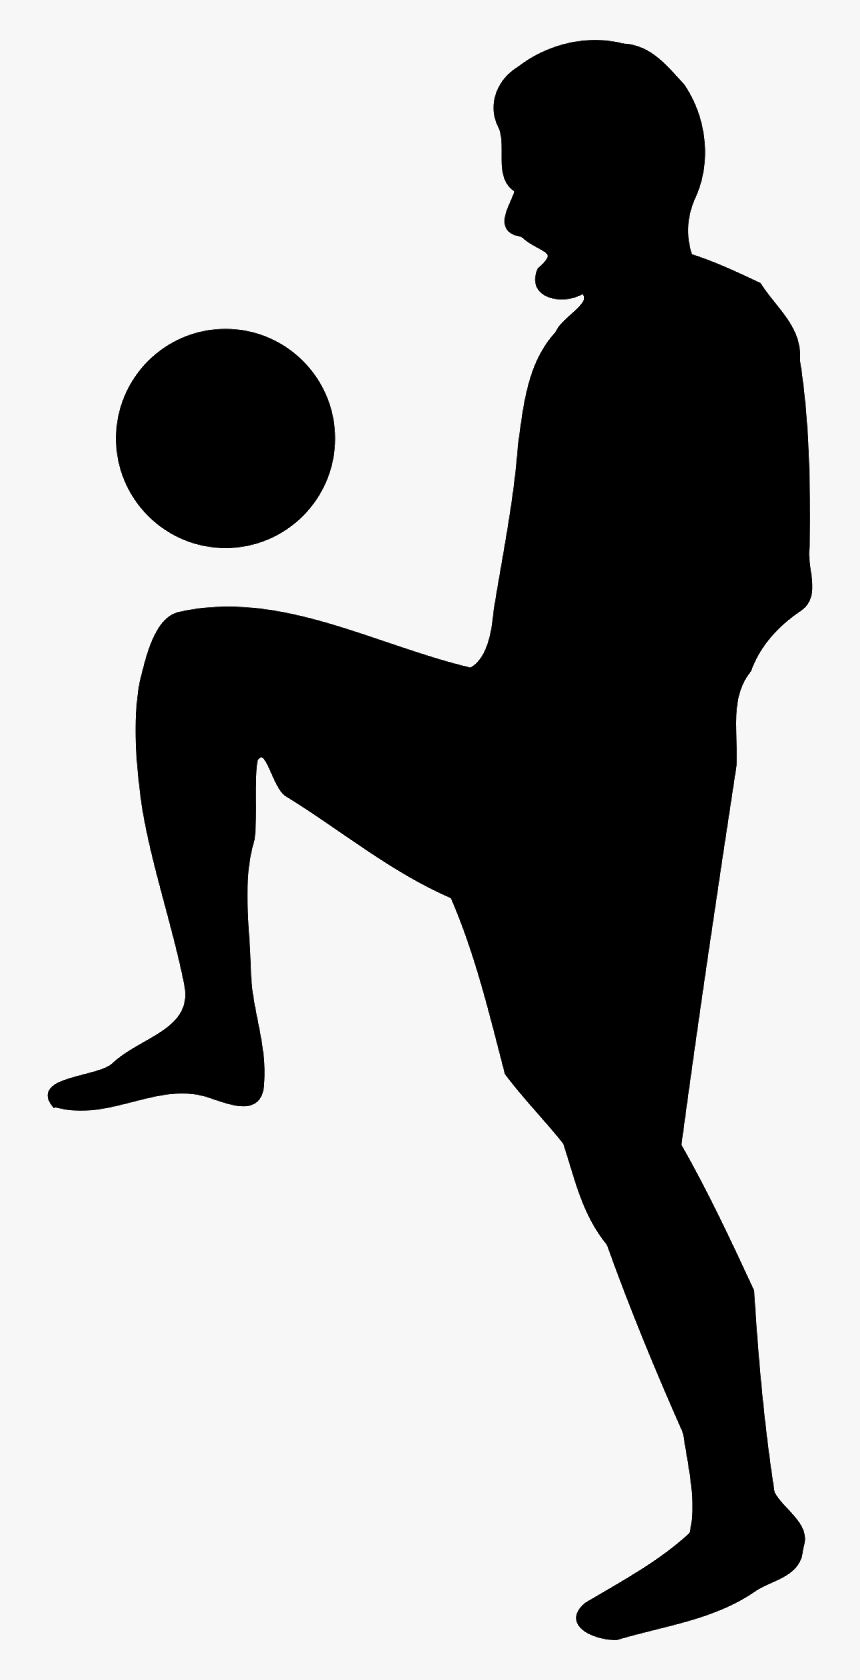 Soccer Kids Clip Art Black And White - Soccer Silhouette Gif, HD Png Download, Free Download